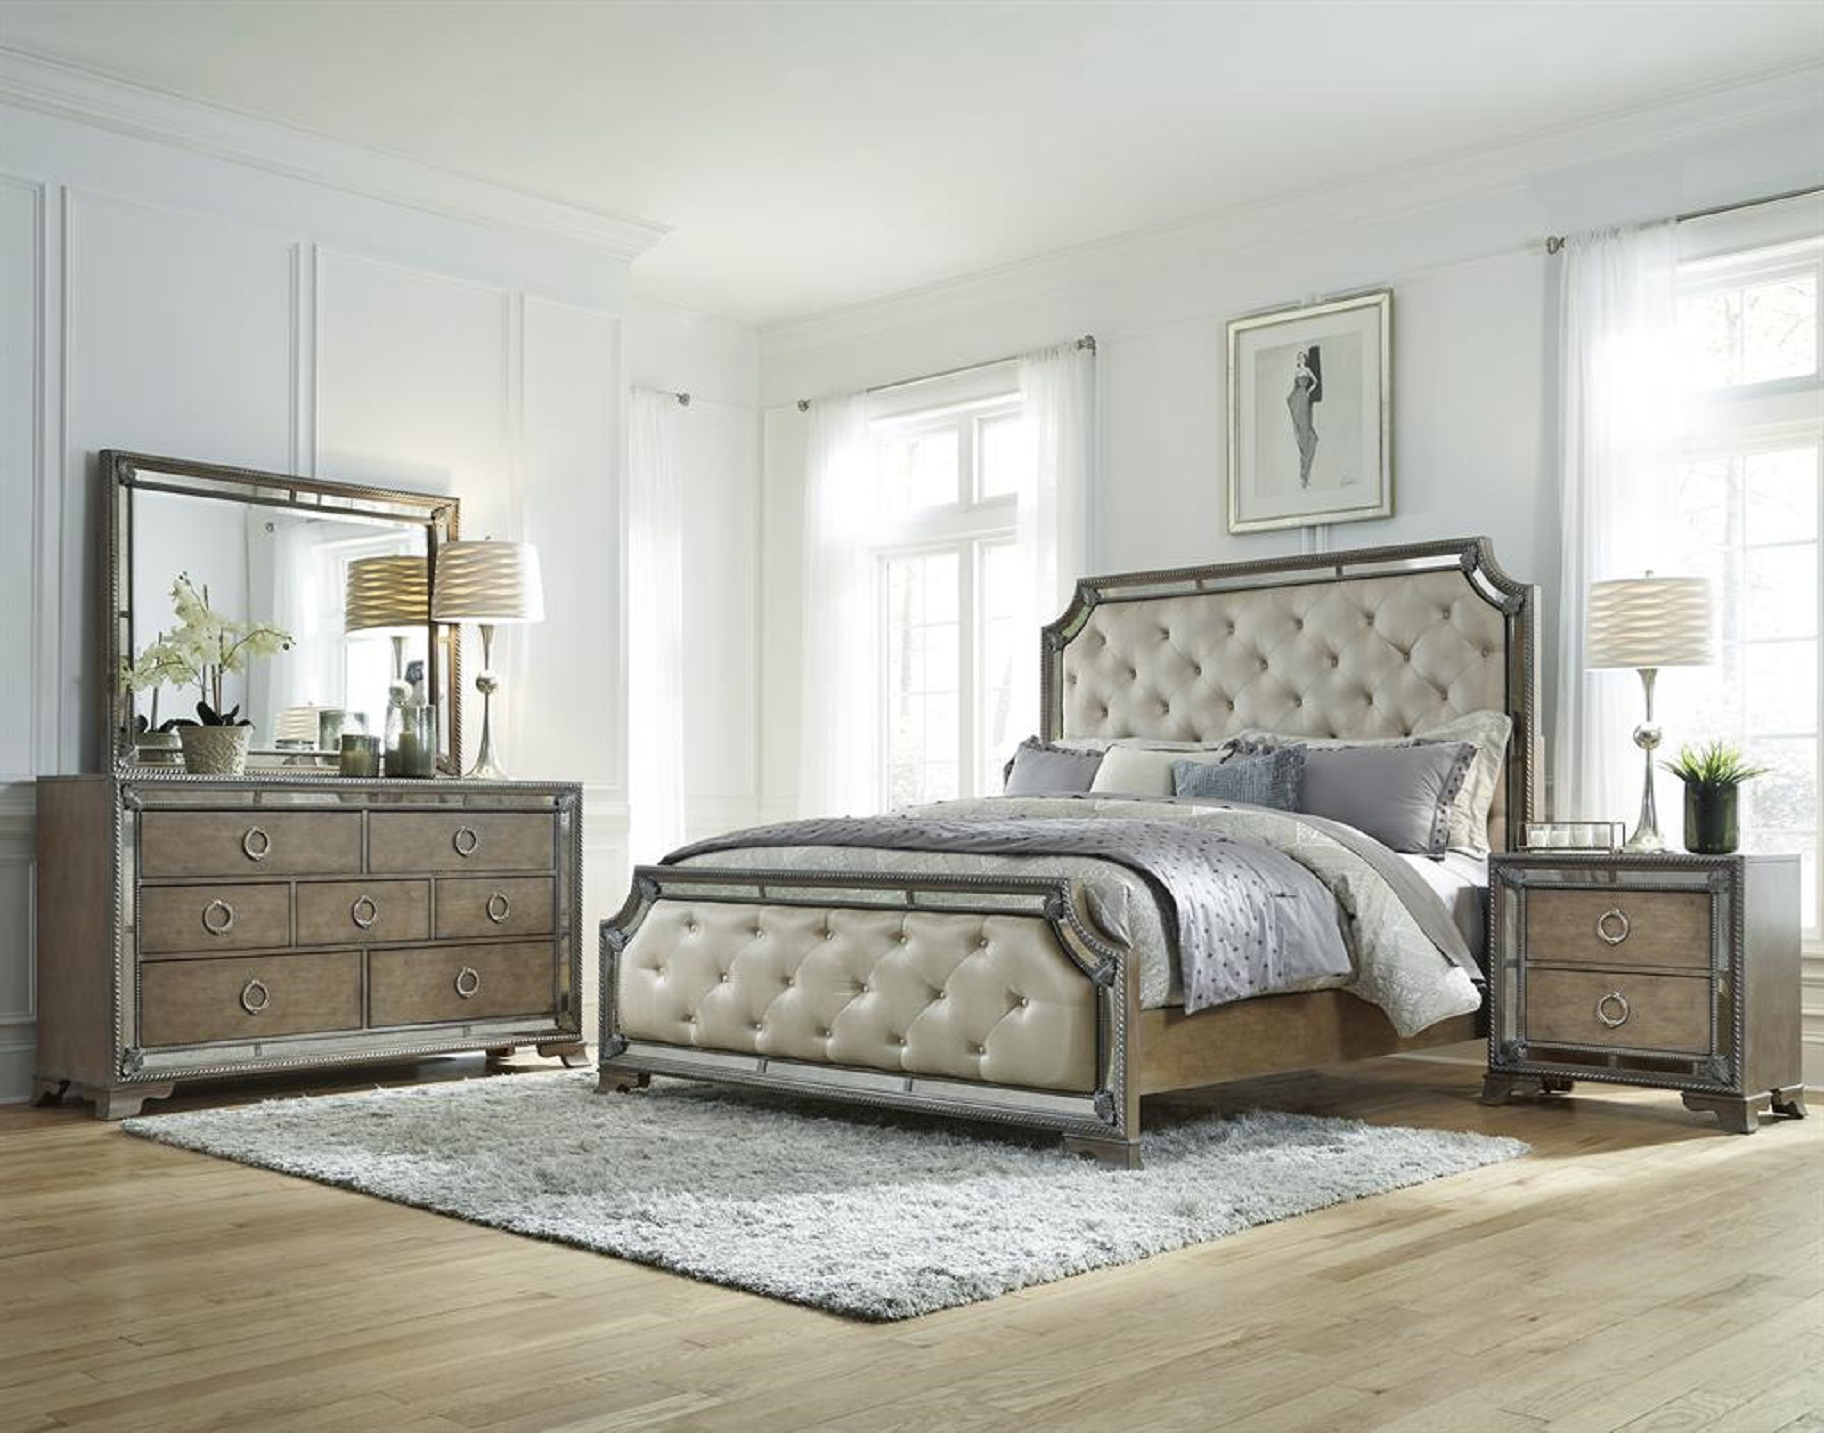 mirrored bedroom furniture set photo - 2